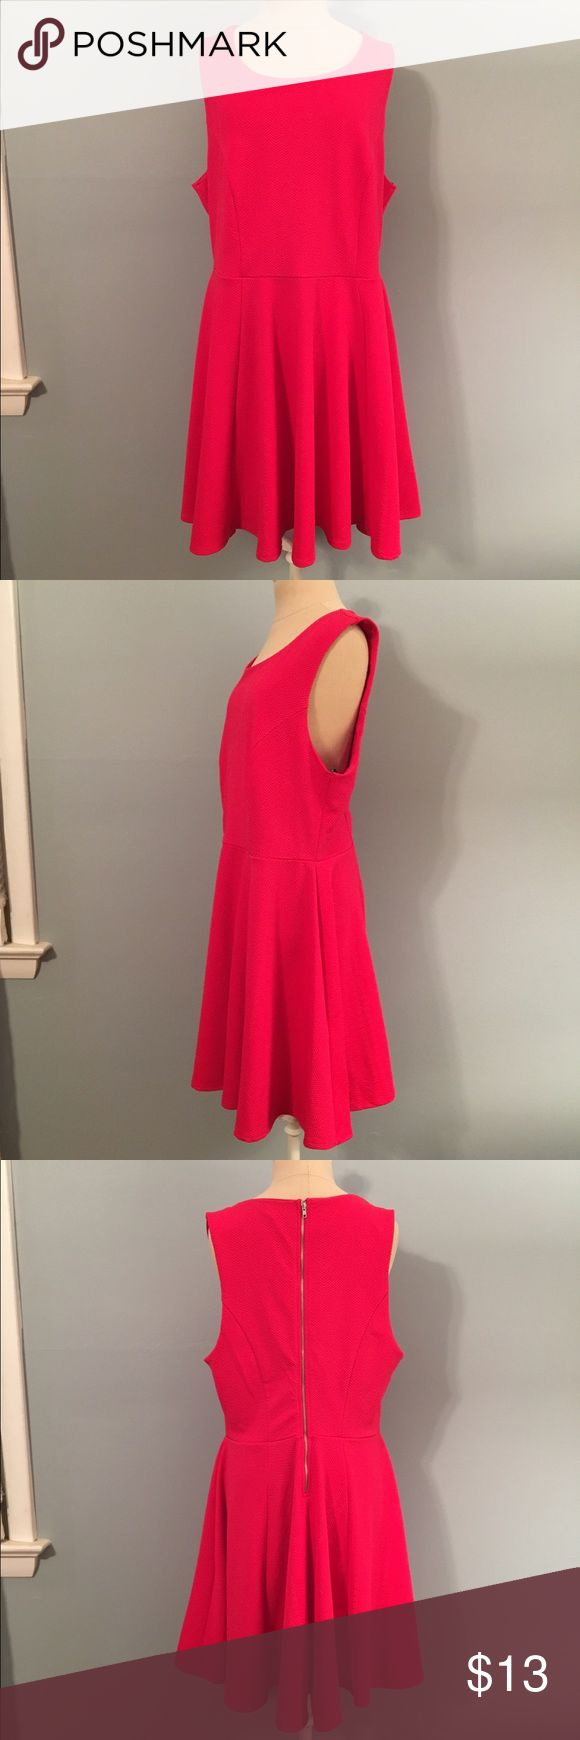 Forever 21 Plus Red Fit and Flare Dress Forever 21 Plus Red Fit and Flare Dress. Size 2X. Like new. NO TRADES! Forever 21 Dresses